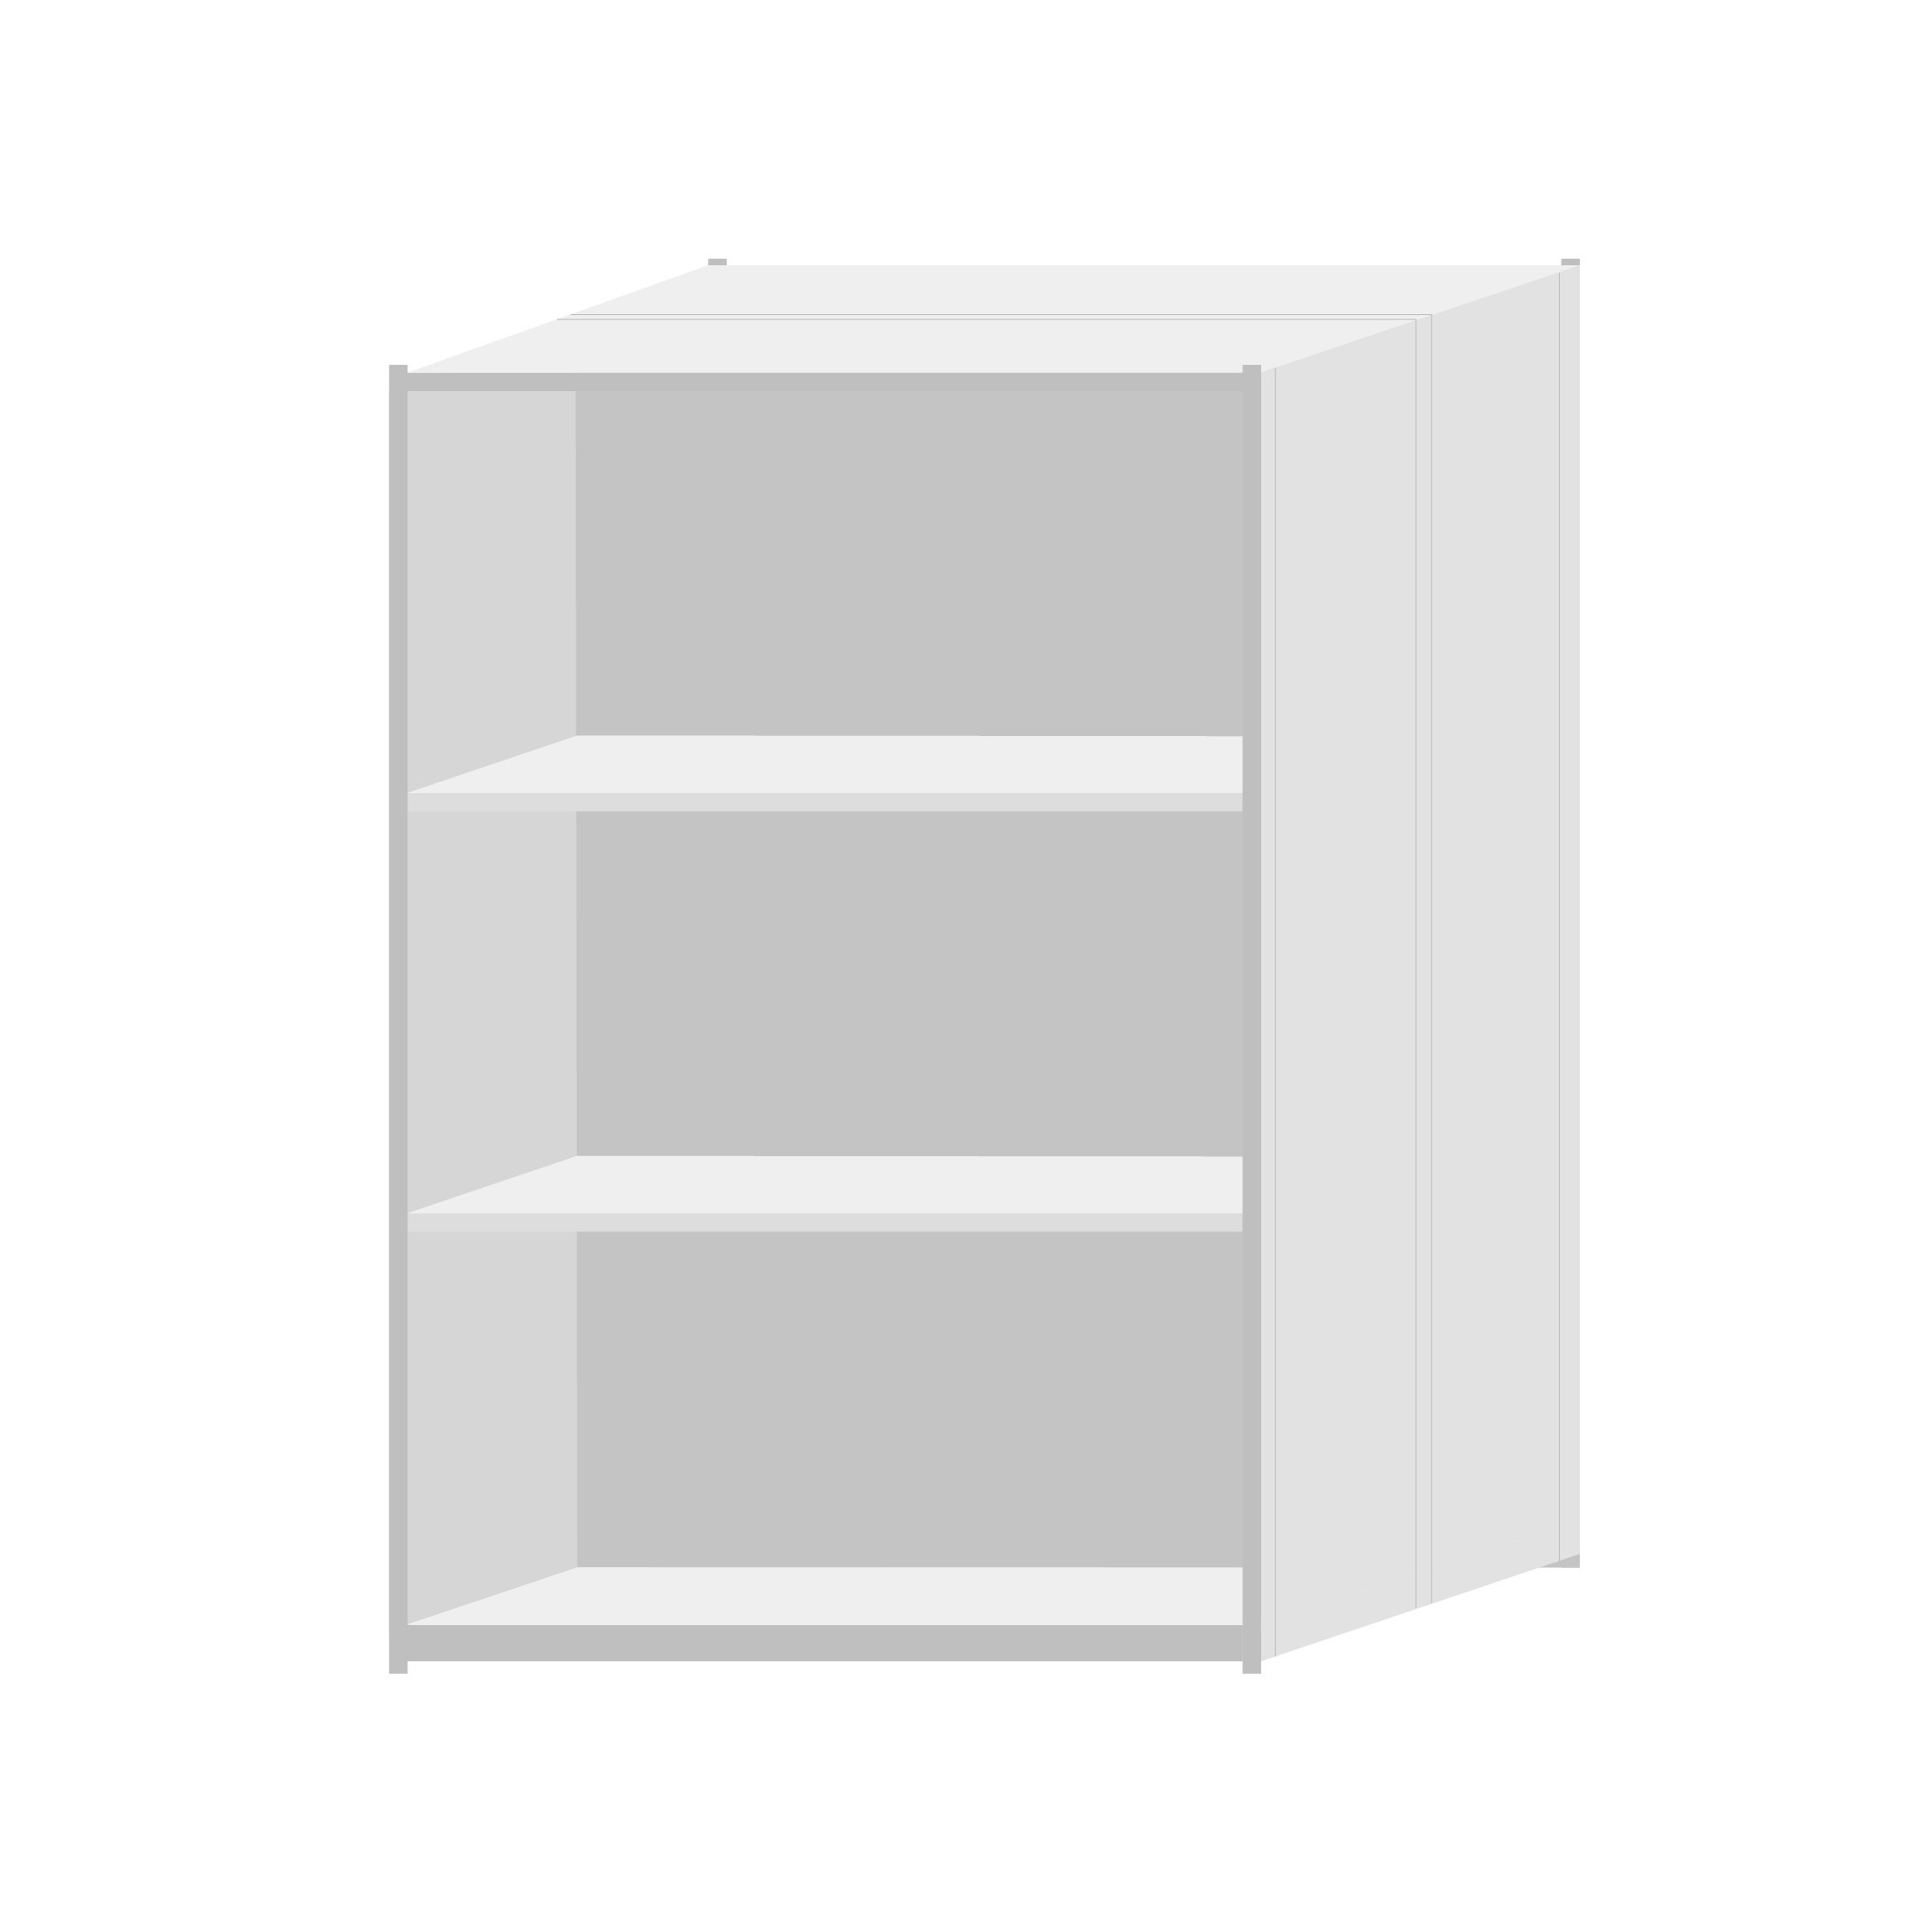 RUT Shelving 1200mm Wide - 4 Levels (Double Sided)